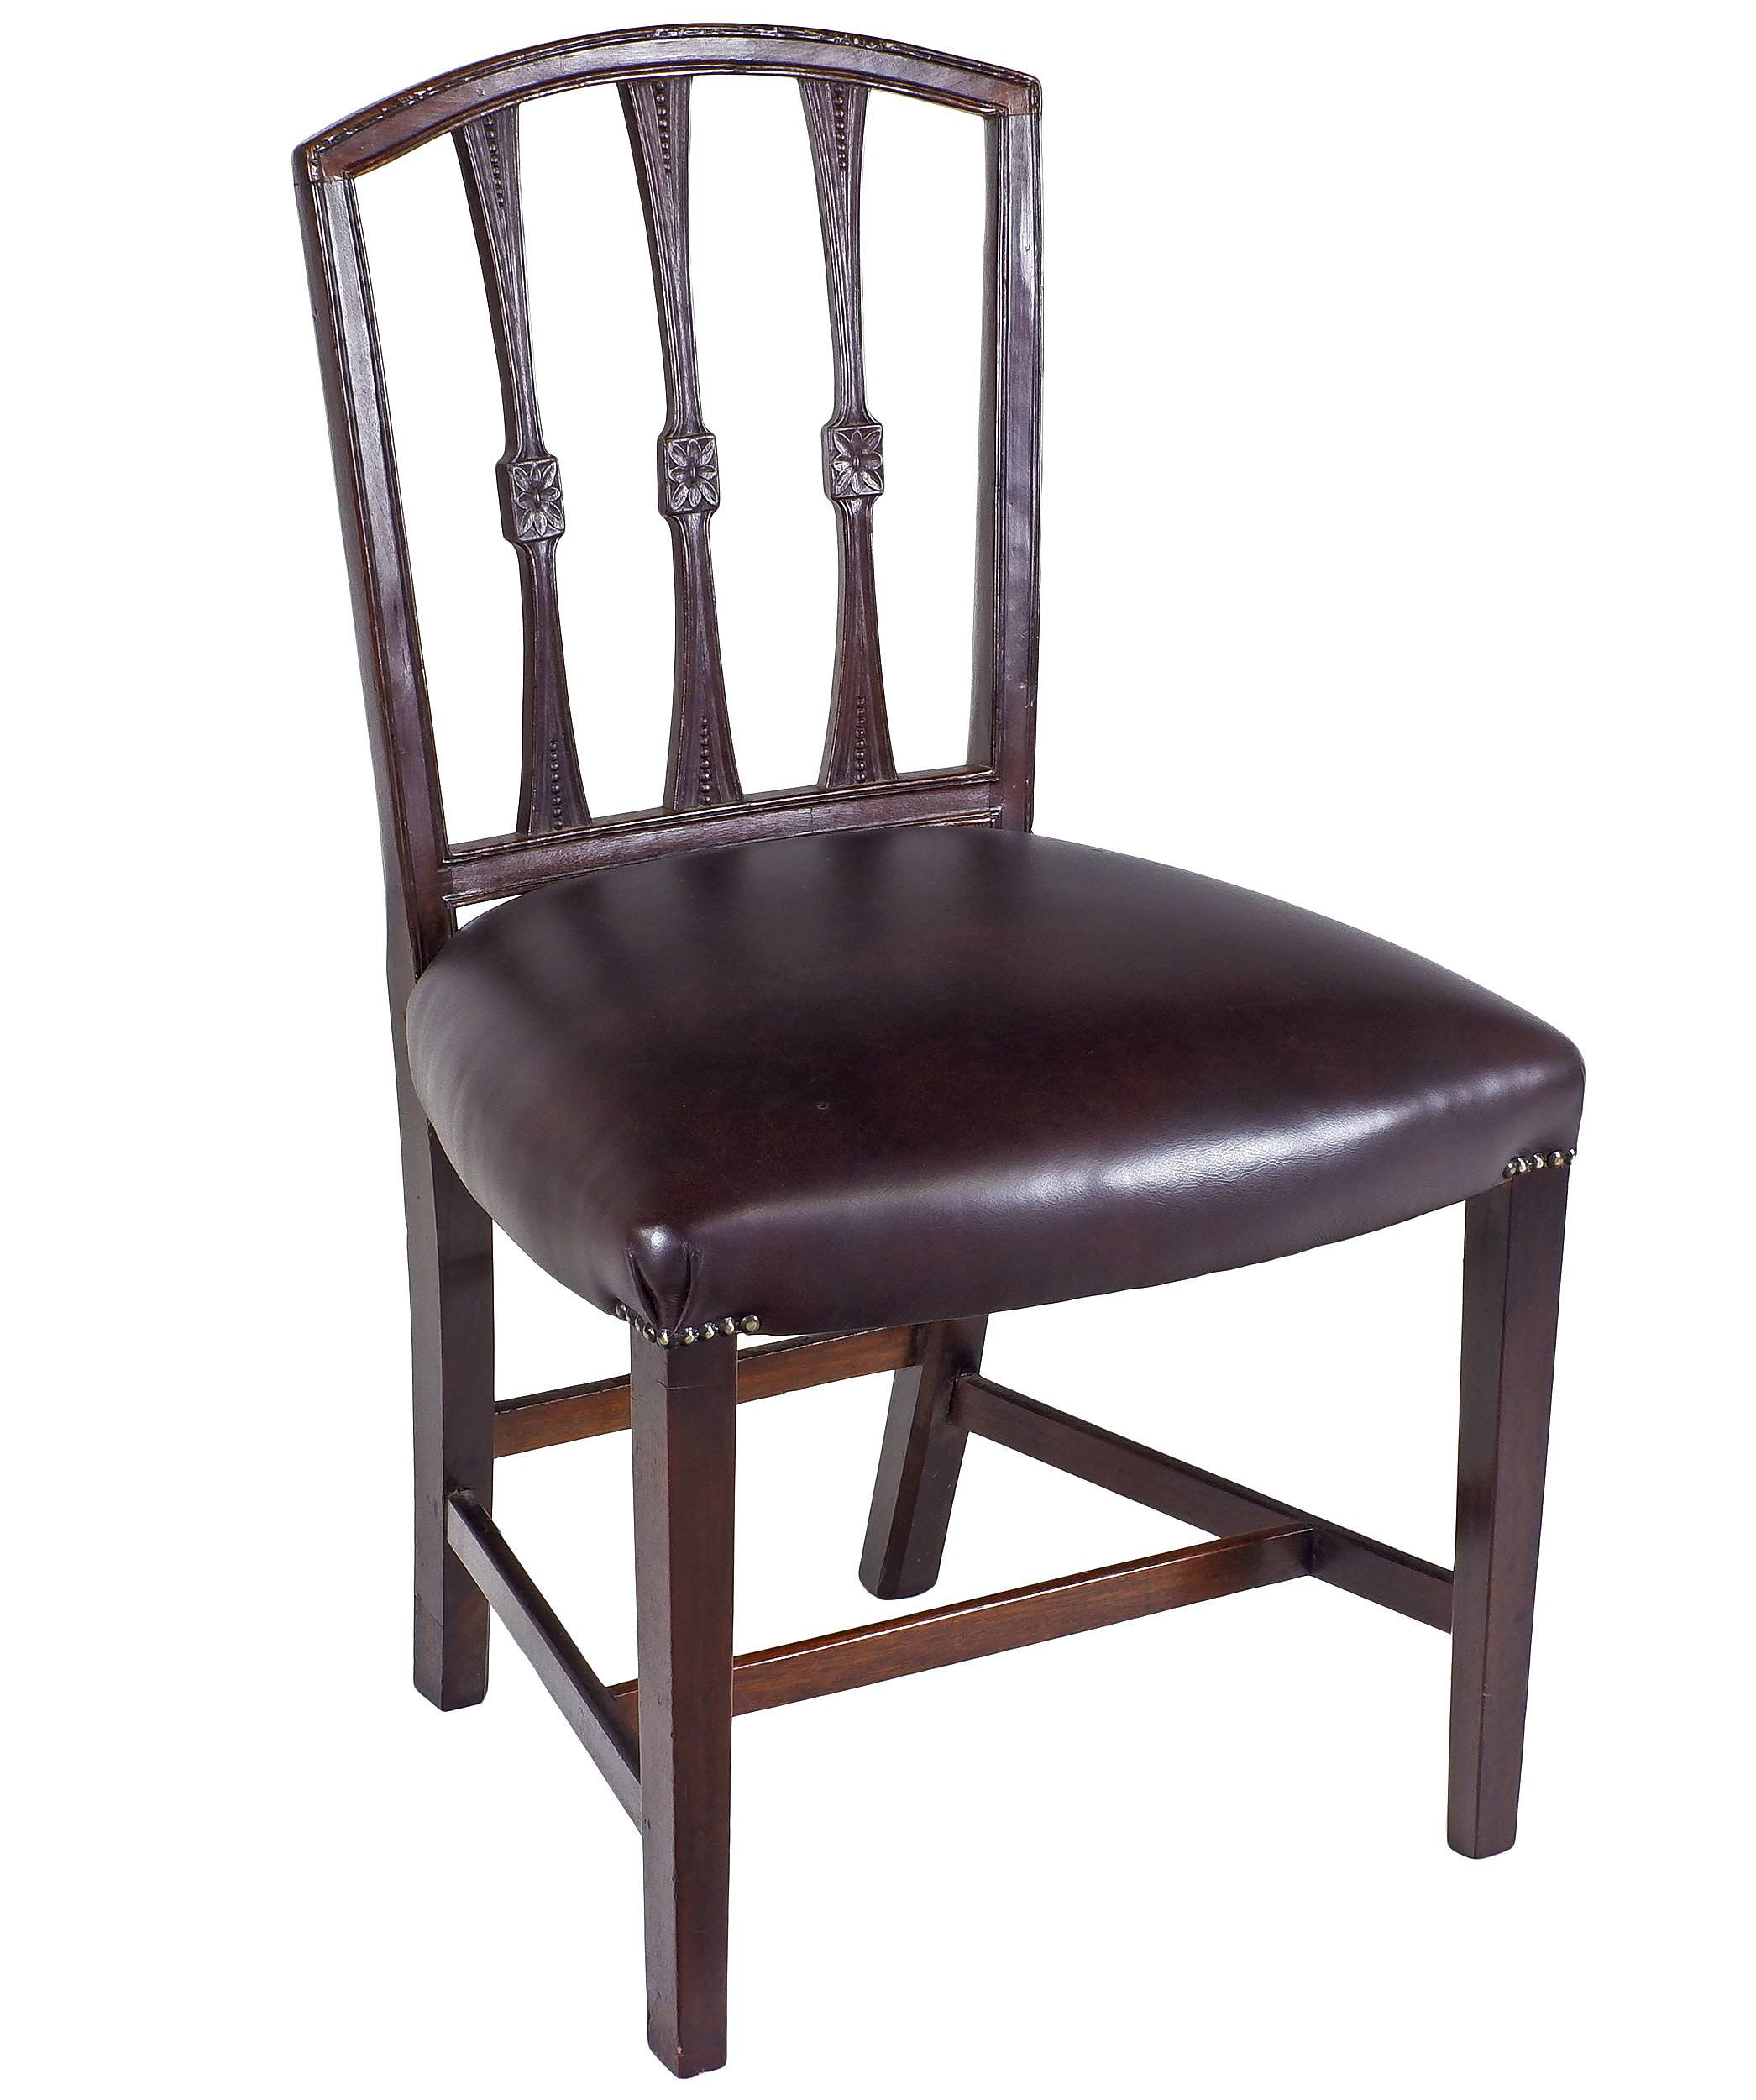 'Hepplewhite Influenced Mahogany Dining Chair 19th Century'